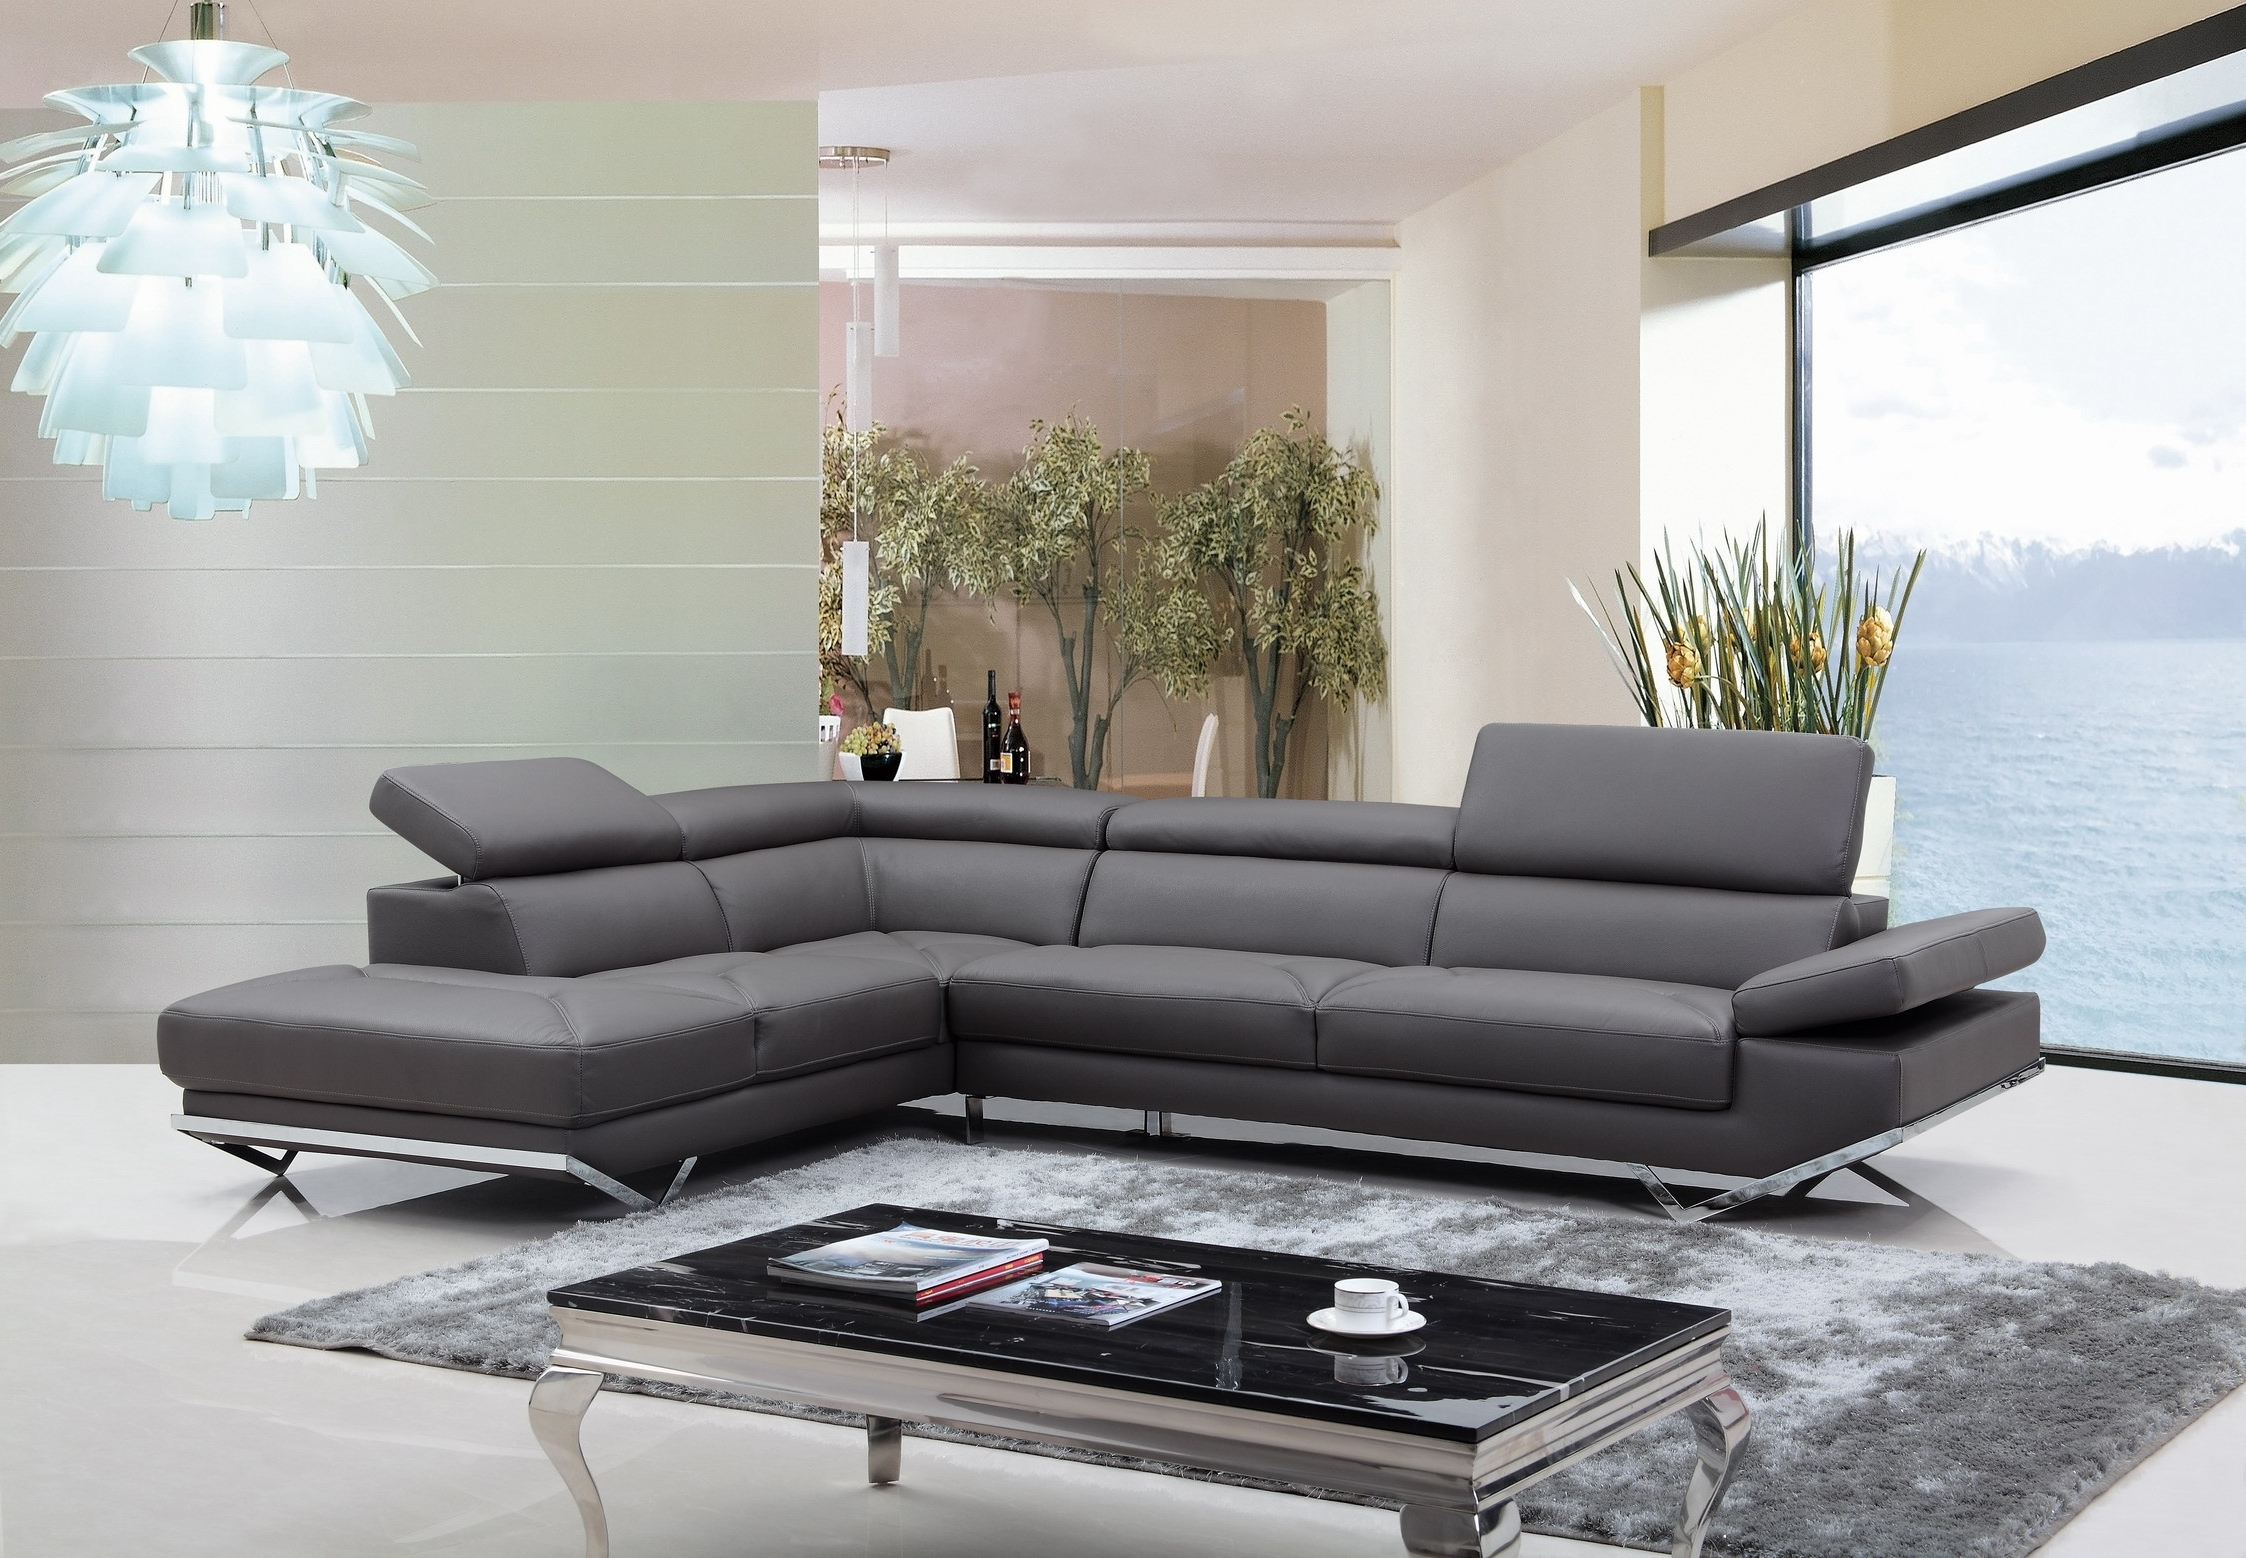 Quebec Sectional Sofas Pertaining To 2019 Casa Quebec Modern Dark Grey Eco Leather Sectional Sofa (View 16 of 20)